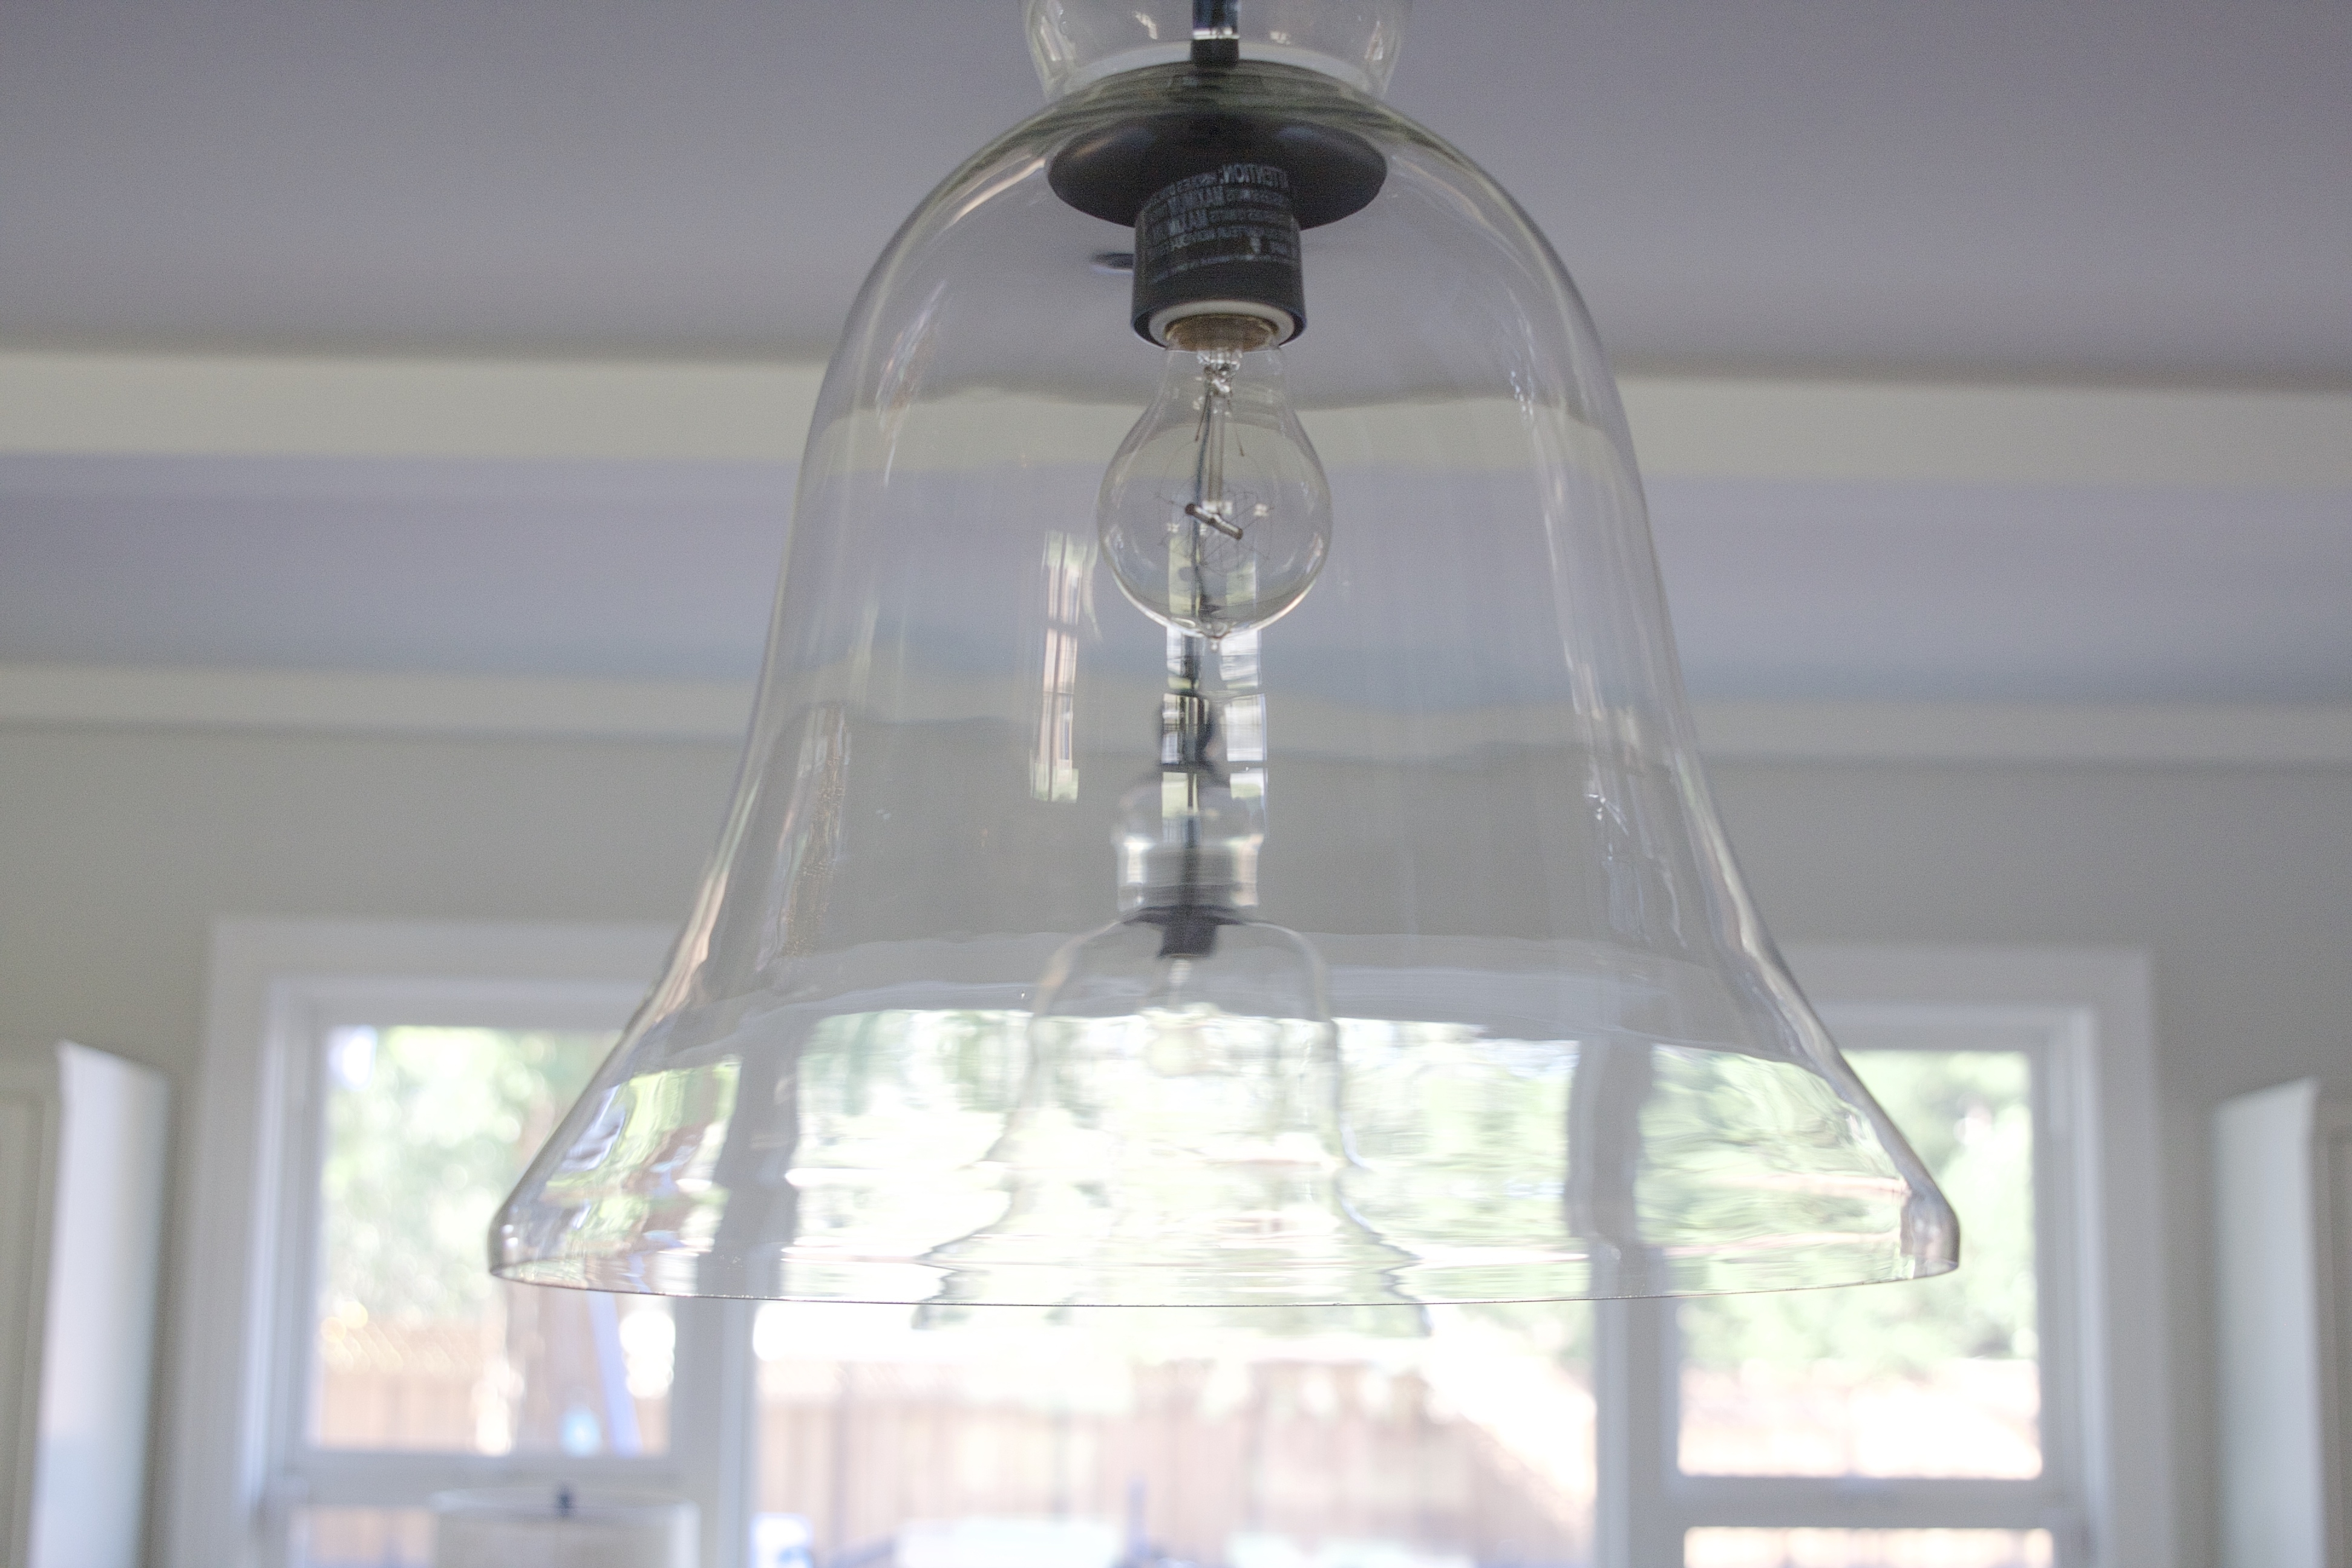 2018 How To Clean Pottery Barn Rustic Pendant Lights – Simply Organized For Clear Glass Chandeliers (View 1 of 20)